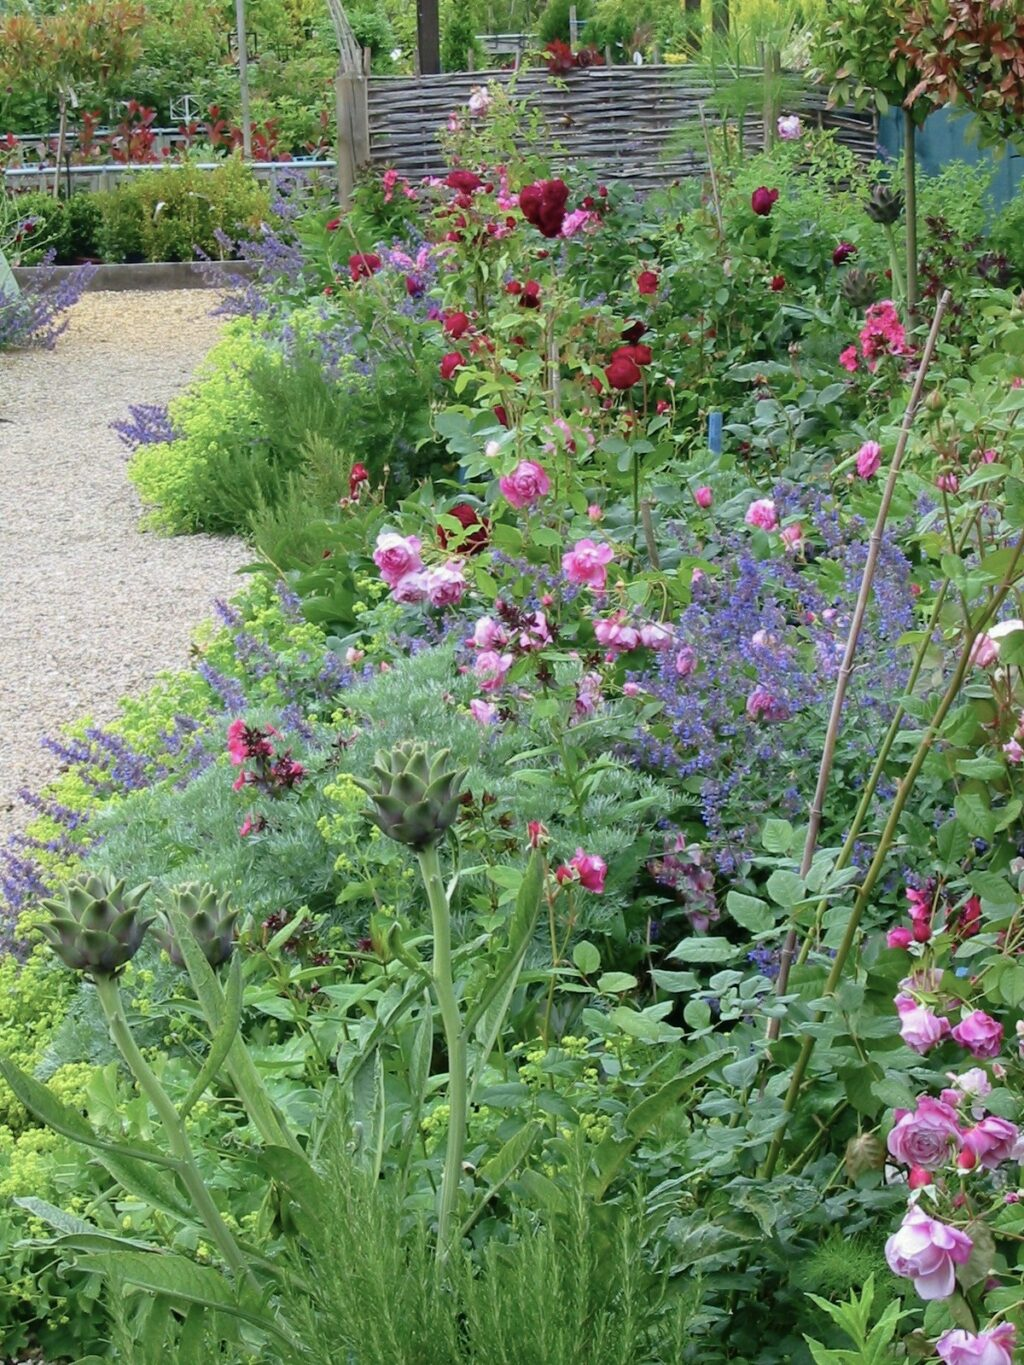 A cut flower bed at Catkin, Lincolnshire, billows with purple catnep, pale pink and deep crimson scented garden roses with the architectural forms of young artichokes in the foreground.